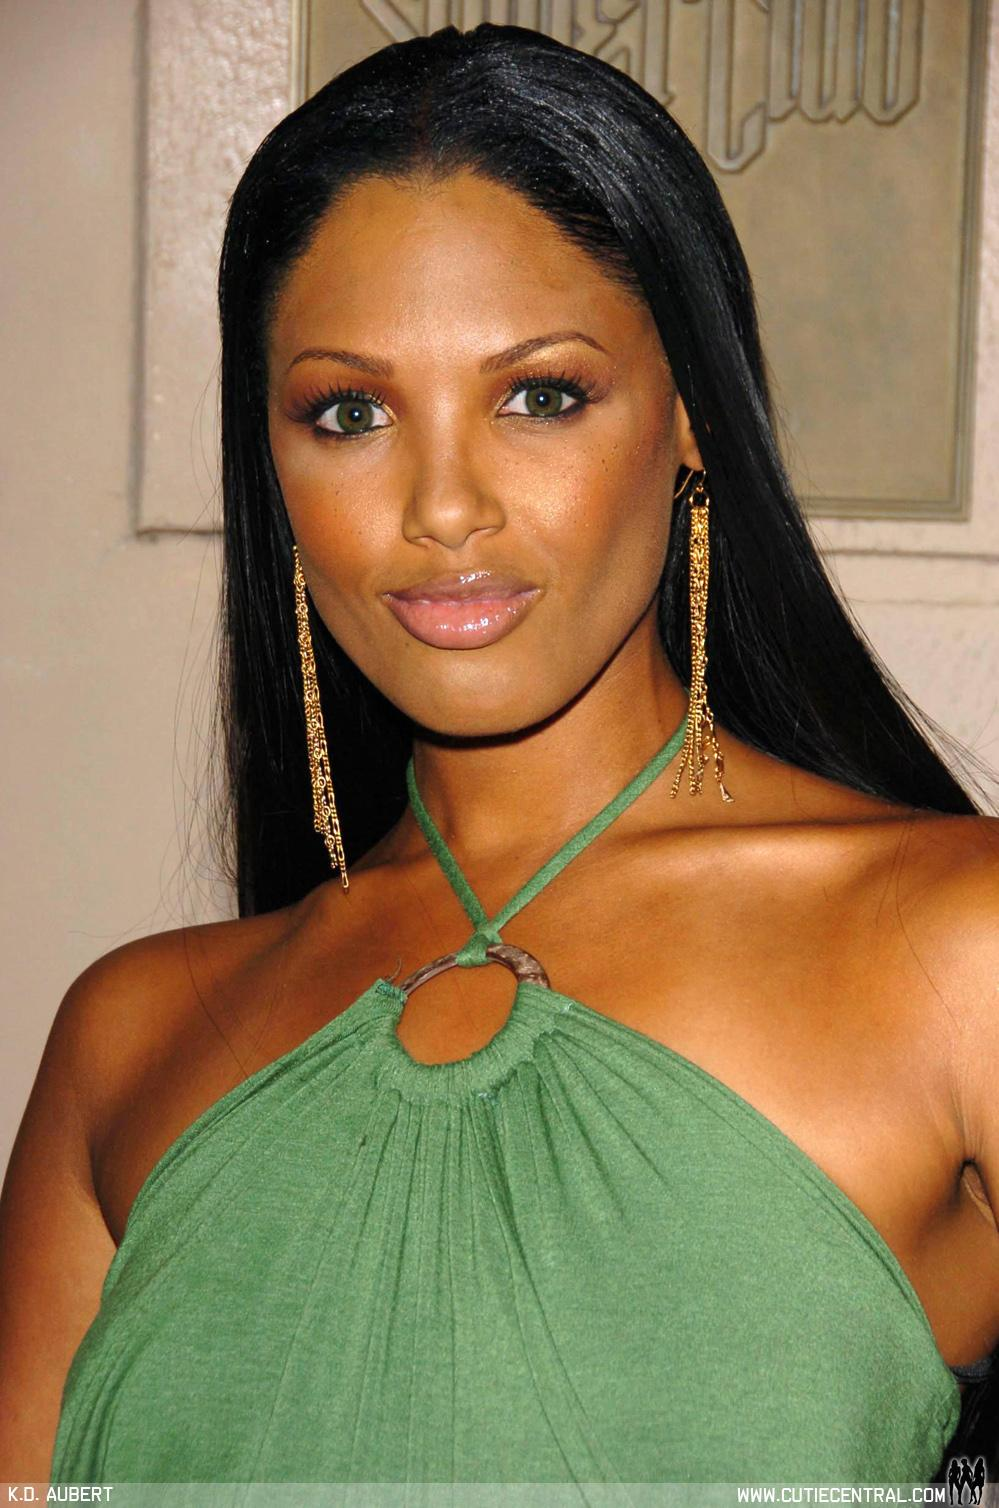 Denise K D Aubert Born December 6 1978 Who Usually Goes By K D Aubert